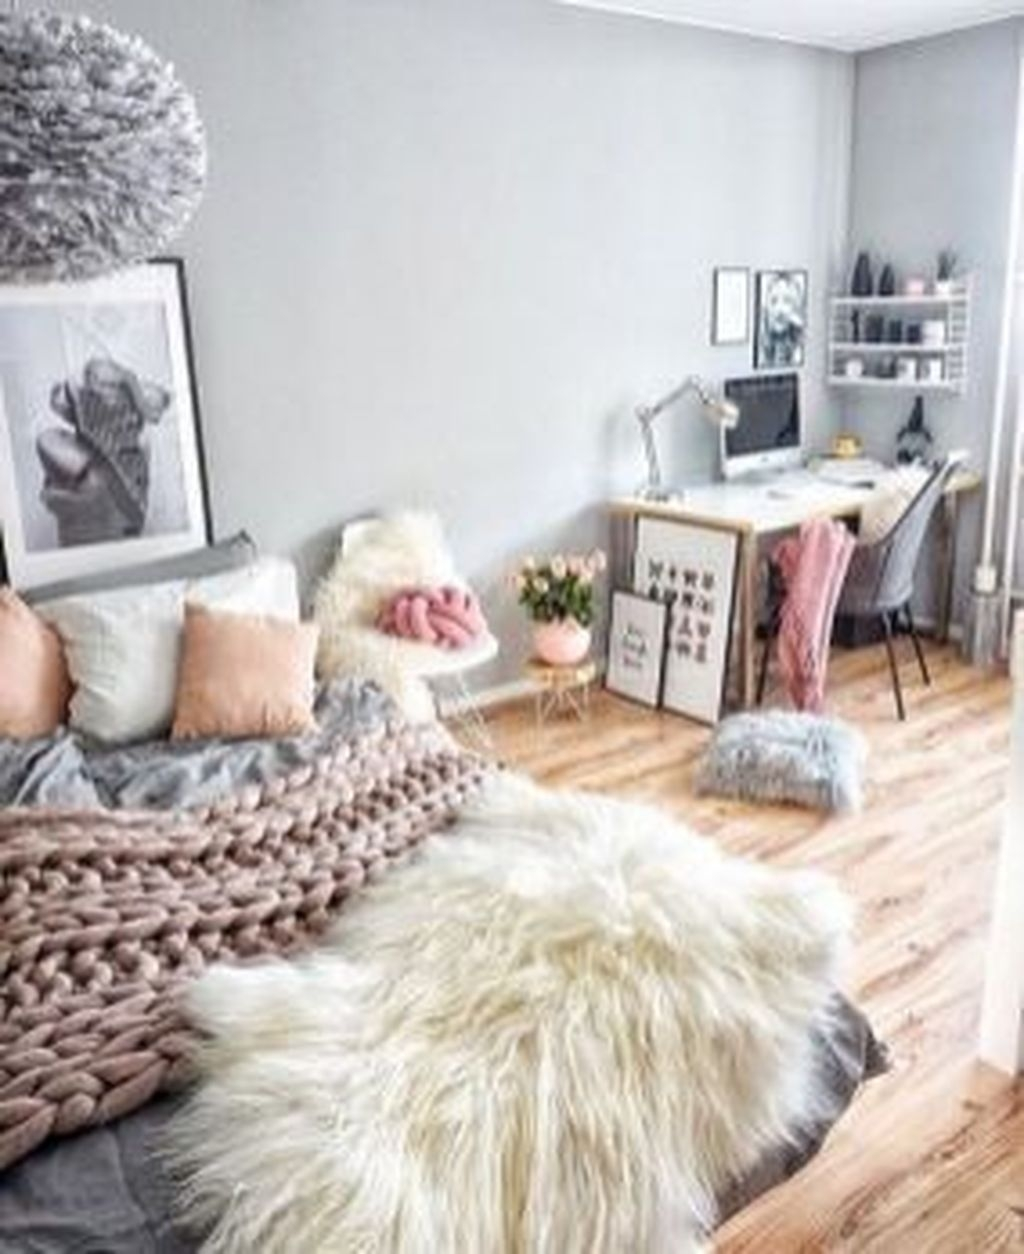 Easy Diy College Apartment Decorating Ideas On A Budget 44